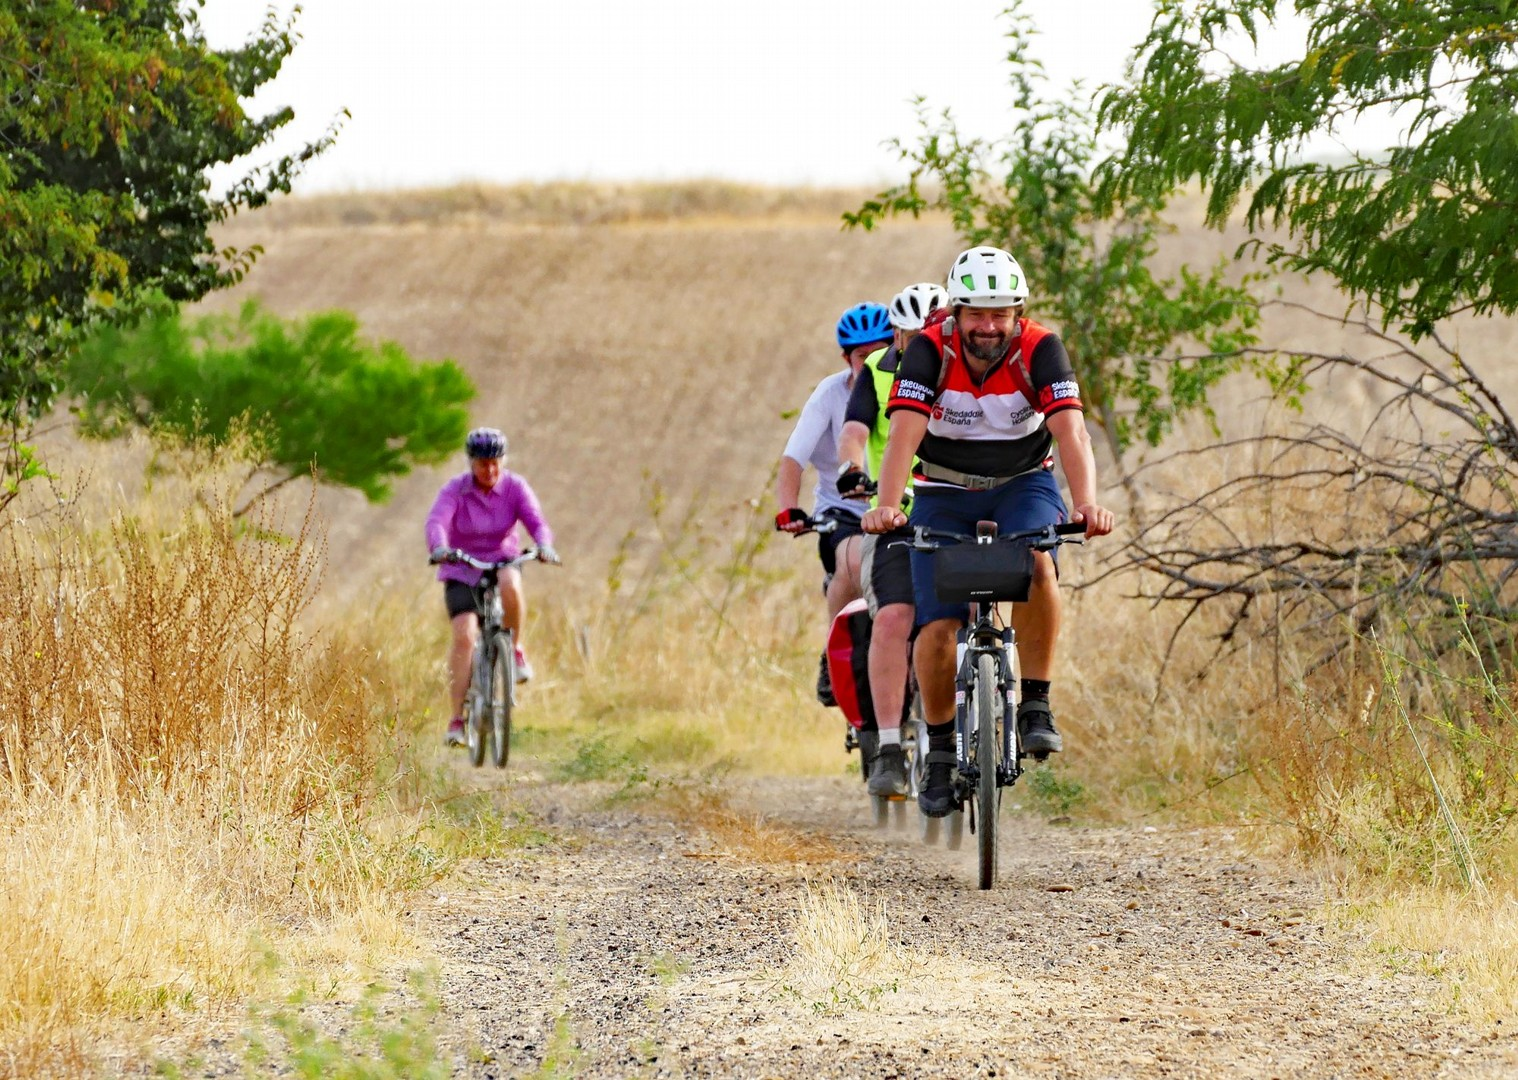 guided-leisure-cycling-holiday-southern-spain-granada-to-seville.jpg - Spain - Granada to Seville - Guided Leisure Cycling Holiday - Leisure Cycling